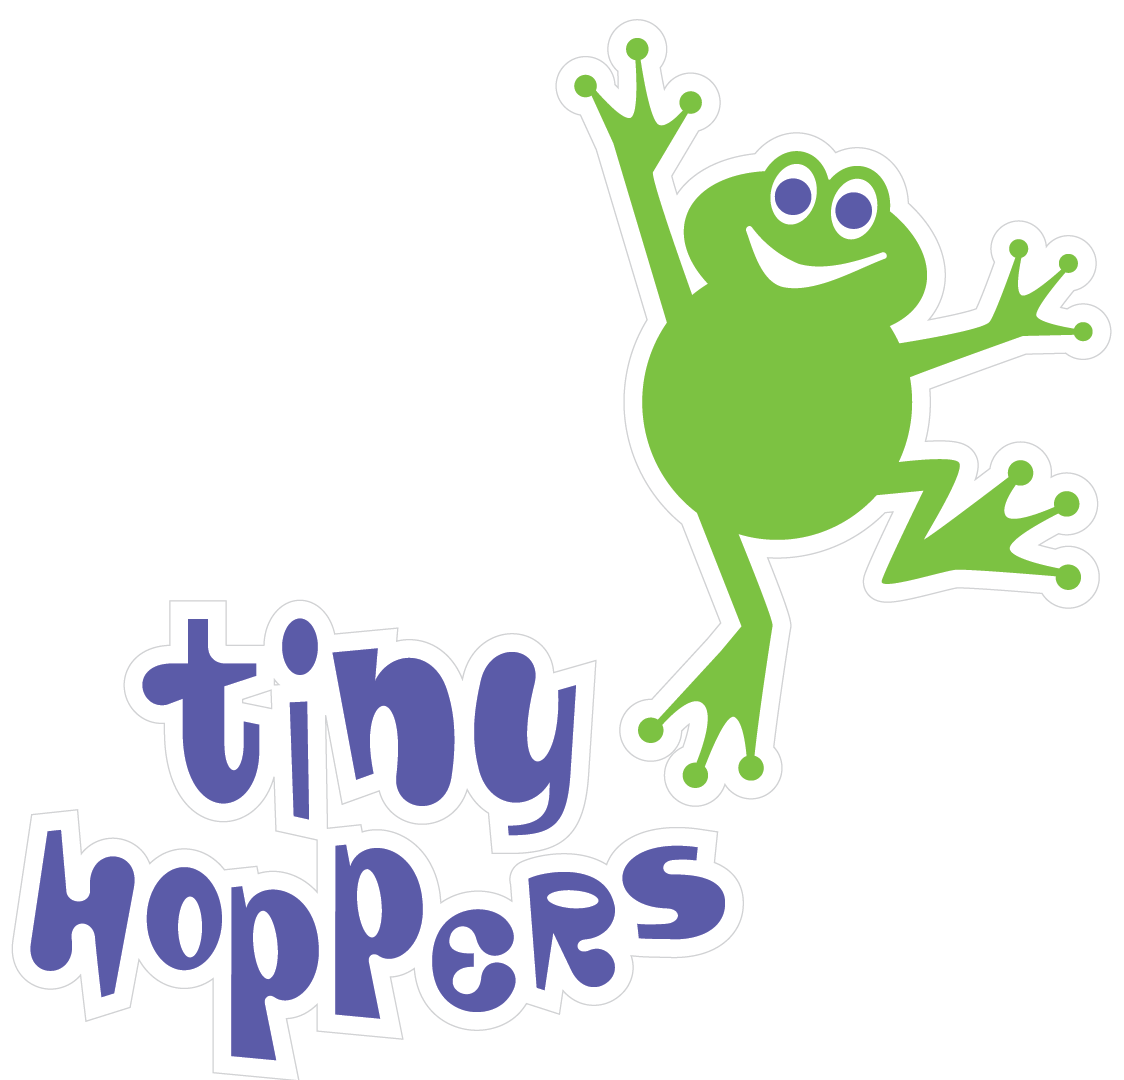 tinyhoppers.ca